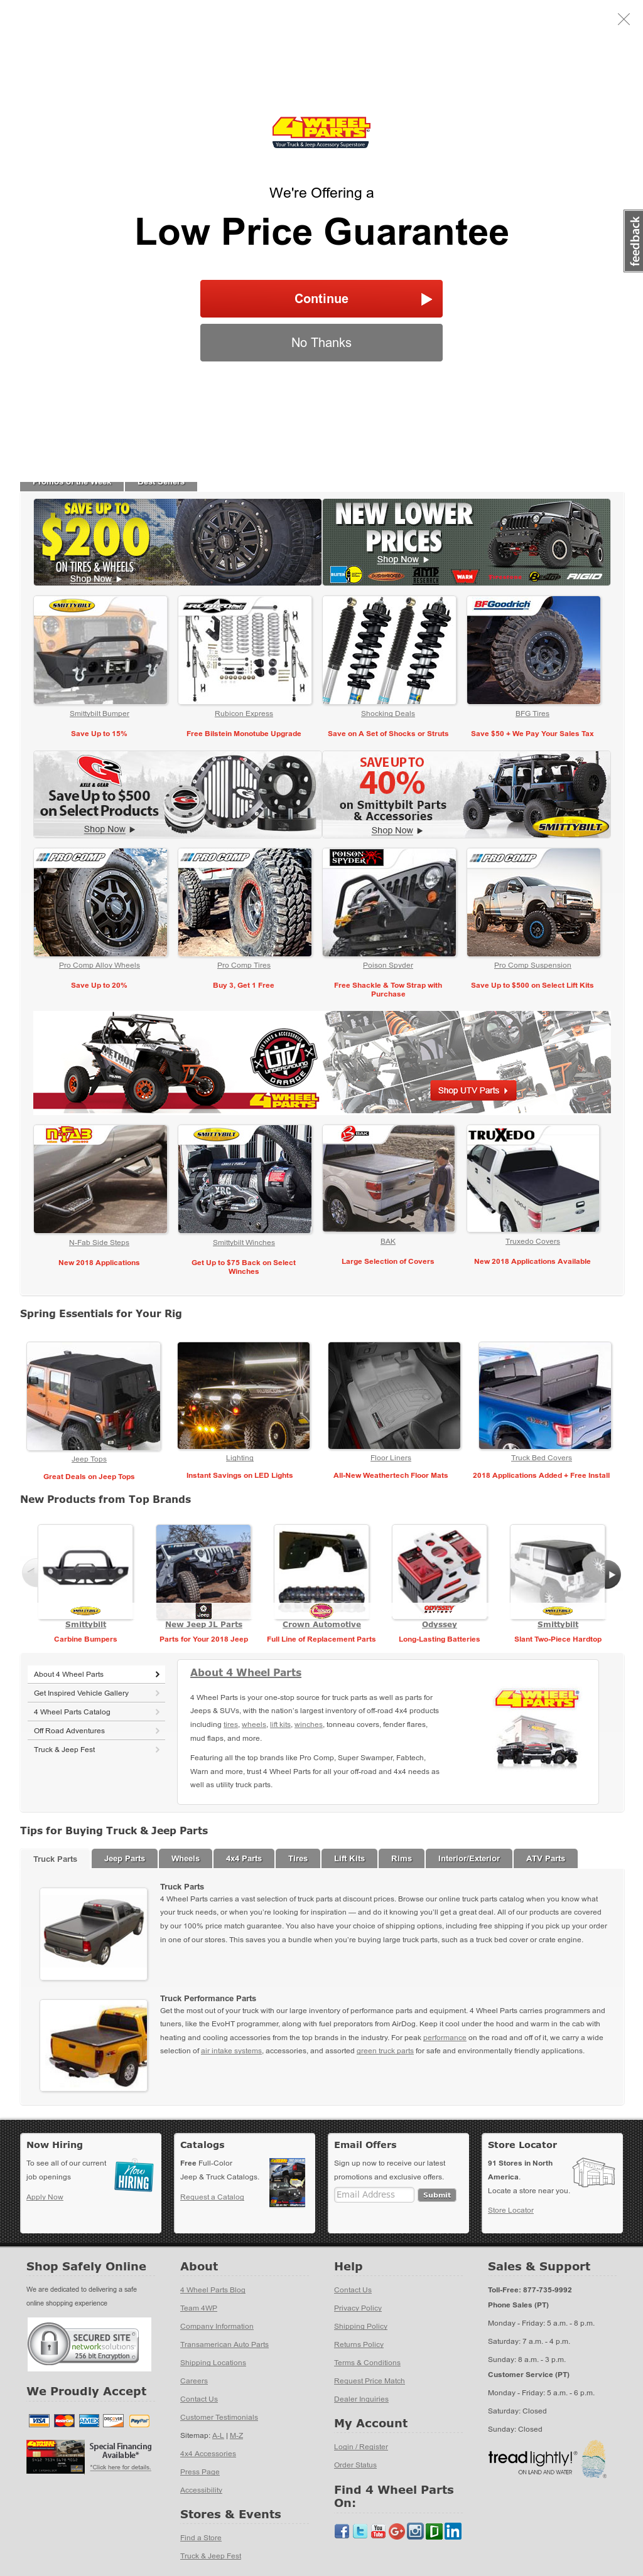 4wheelparts S Competitors Revenue Number Of Employees Funding Acquisitions News Owler Company Profile